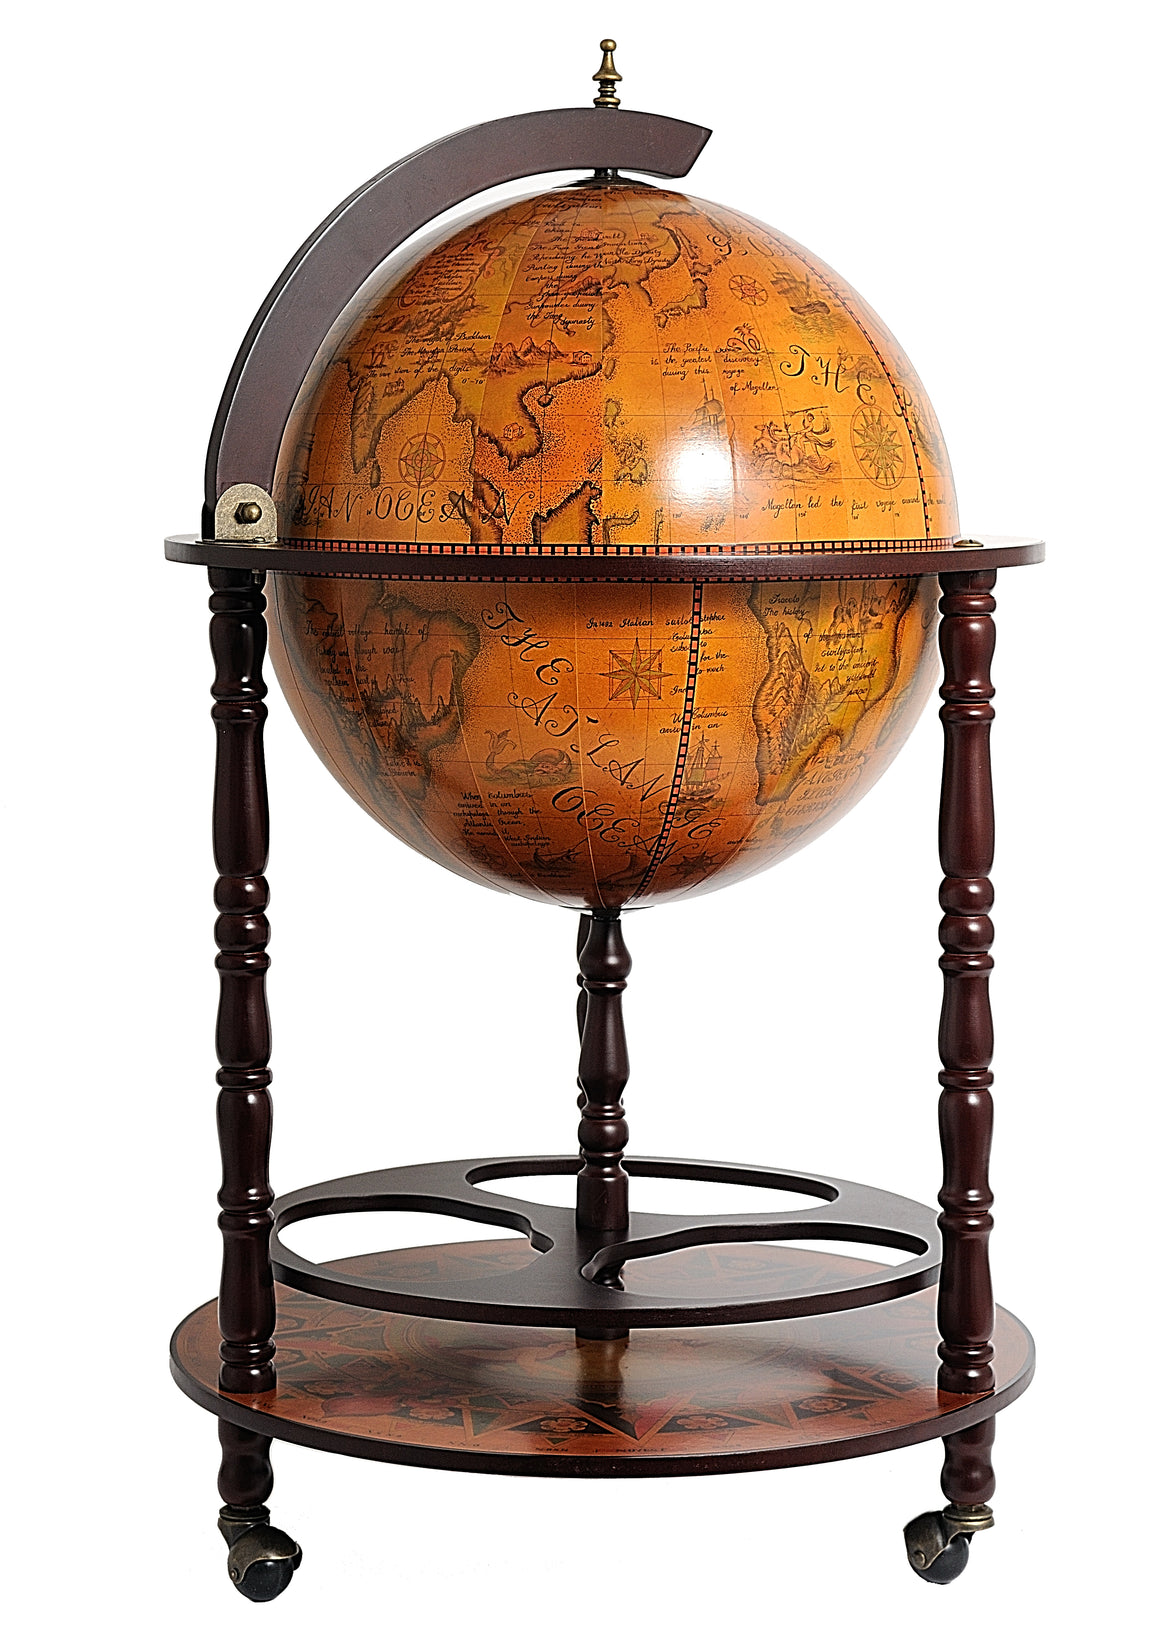 Old Modern Handicrafts 17 3/4 inch World Globe Cabinet - Decor and Gifts Galore